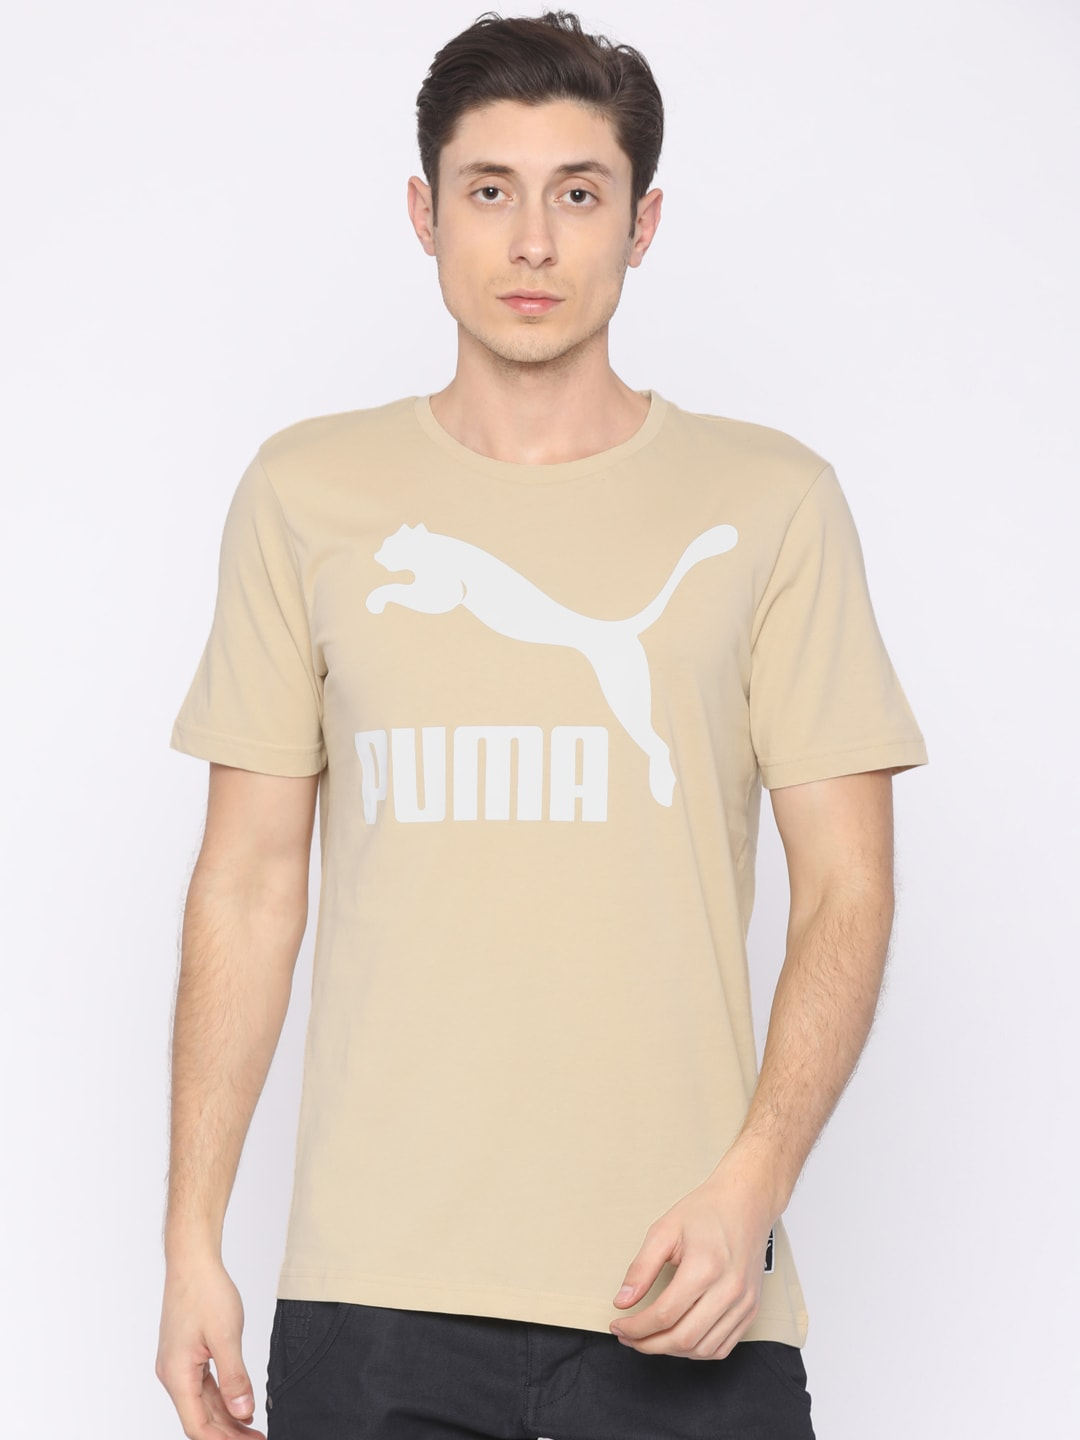 c3b13e1d4a21e5 Puma® - Buy Orignal Puma products in India